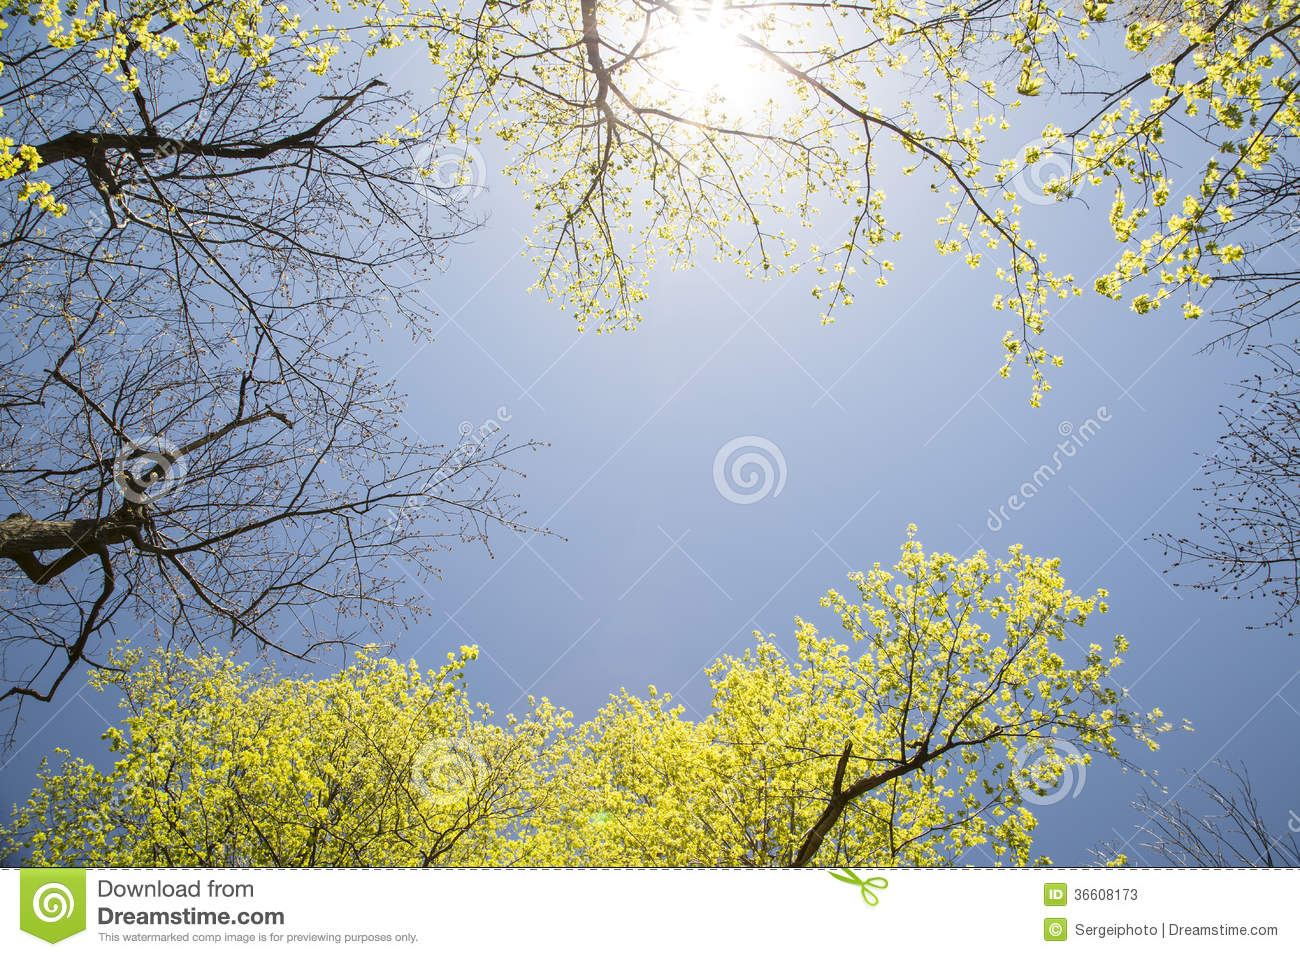 Sky and Maple Trees